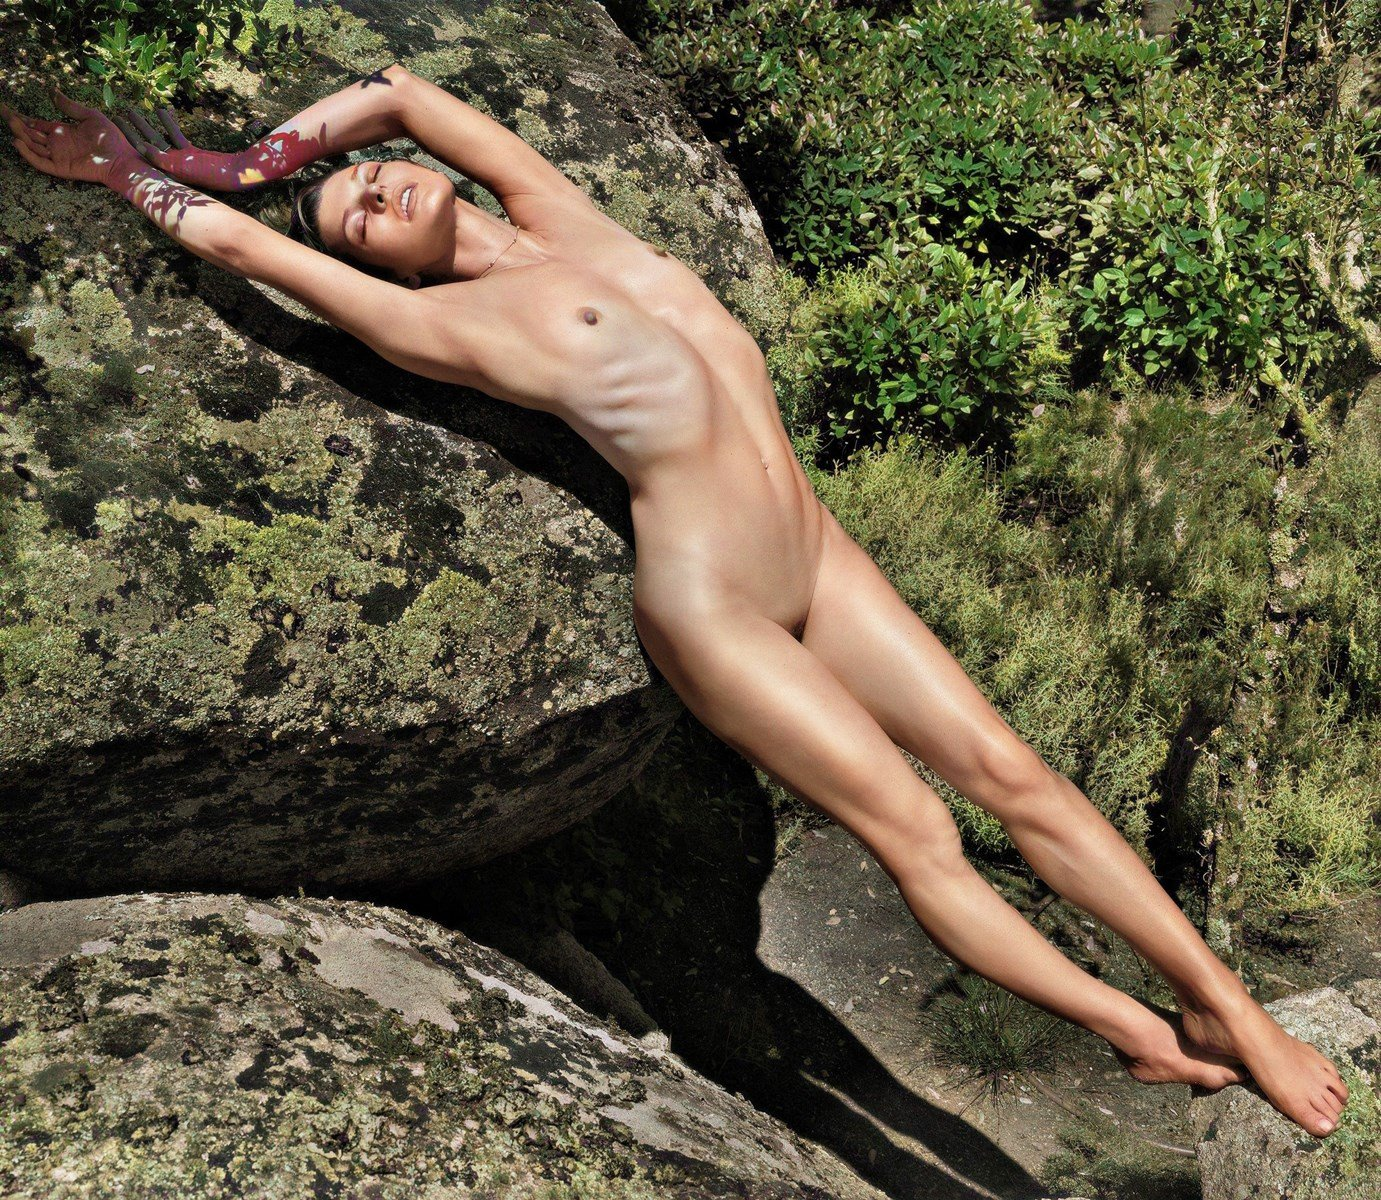 Milla Jovovich Full Frontal Nude Photos Colorized